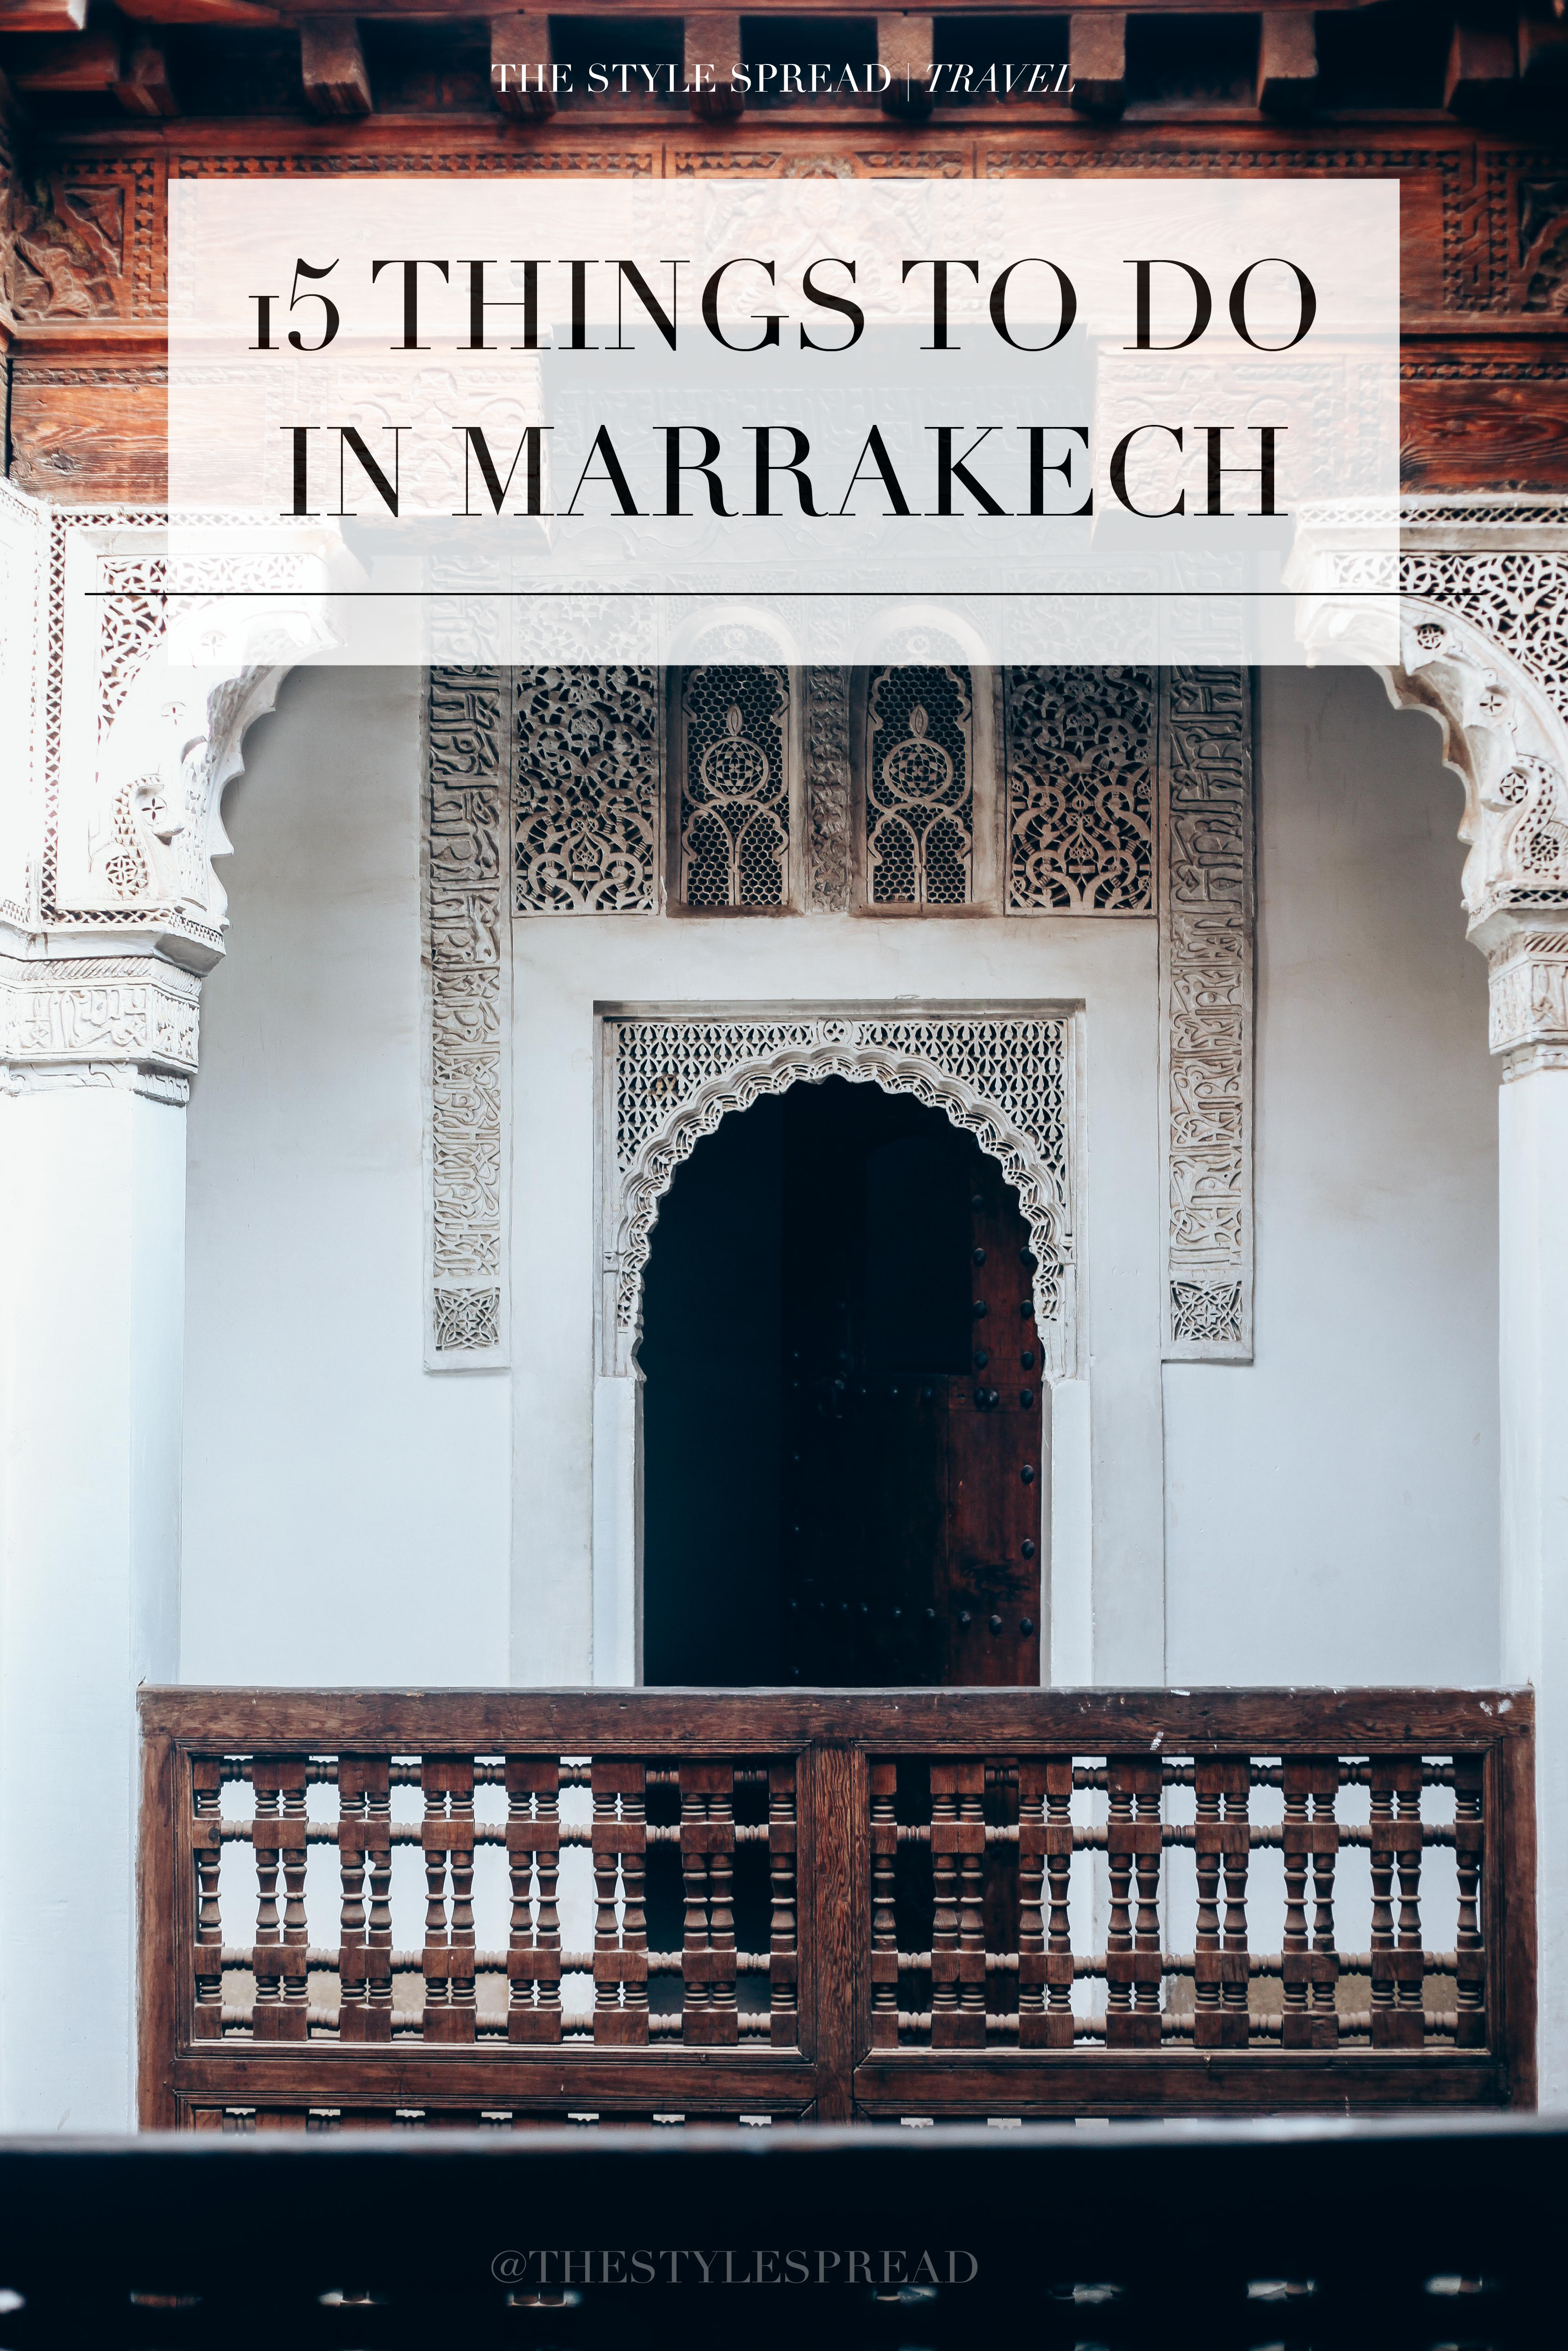 15 Things to Do in Marrakech, Morocco